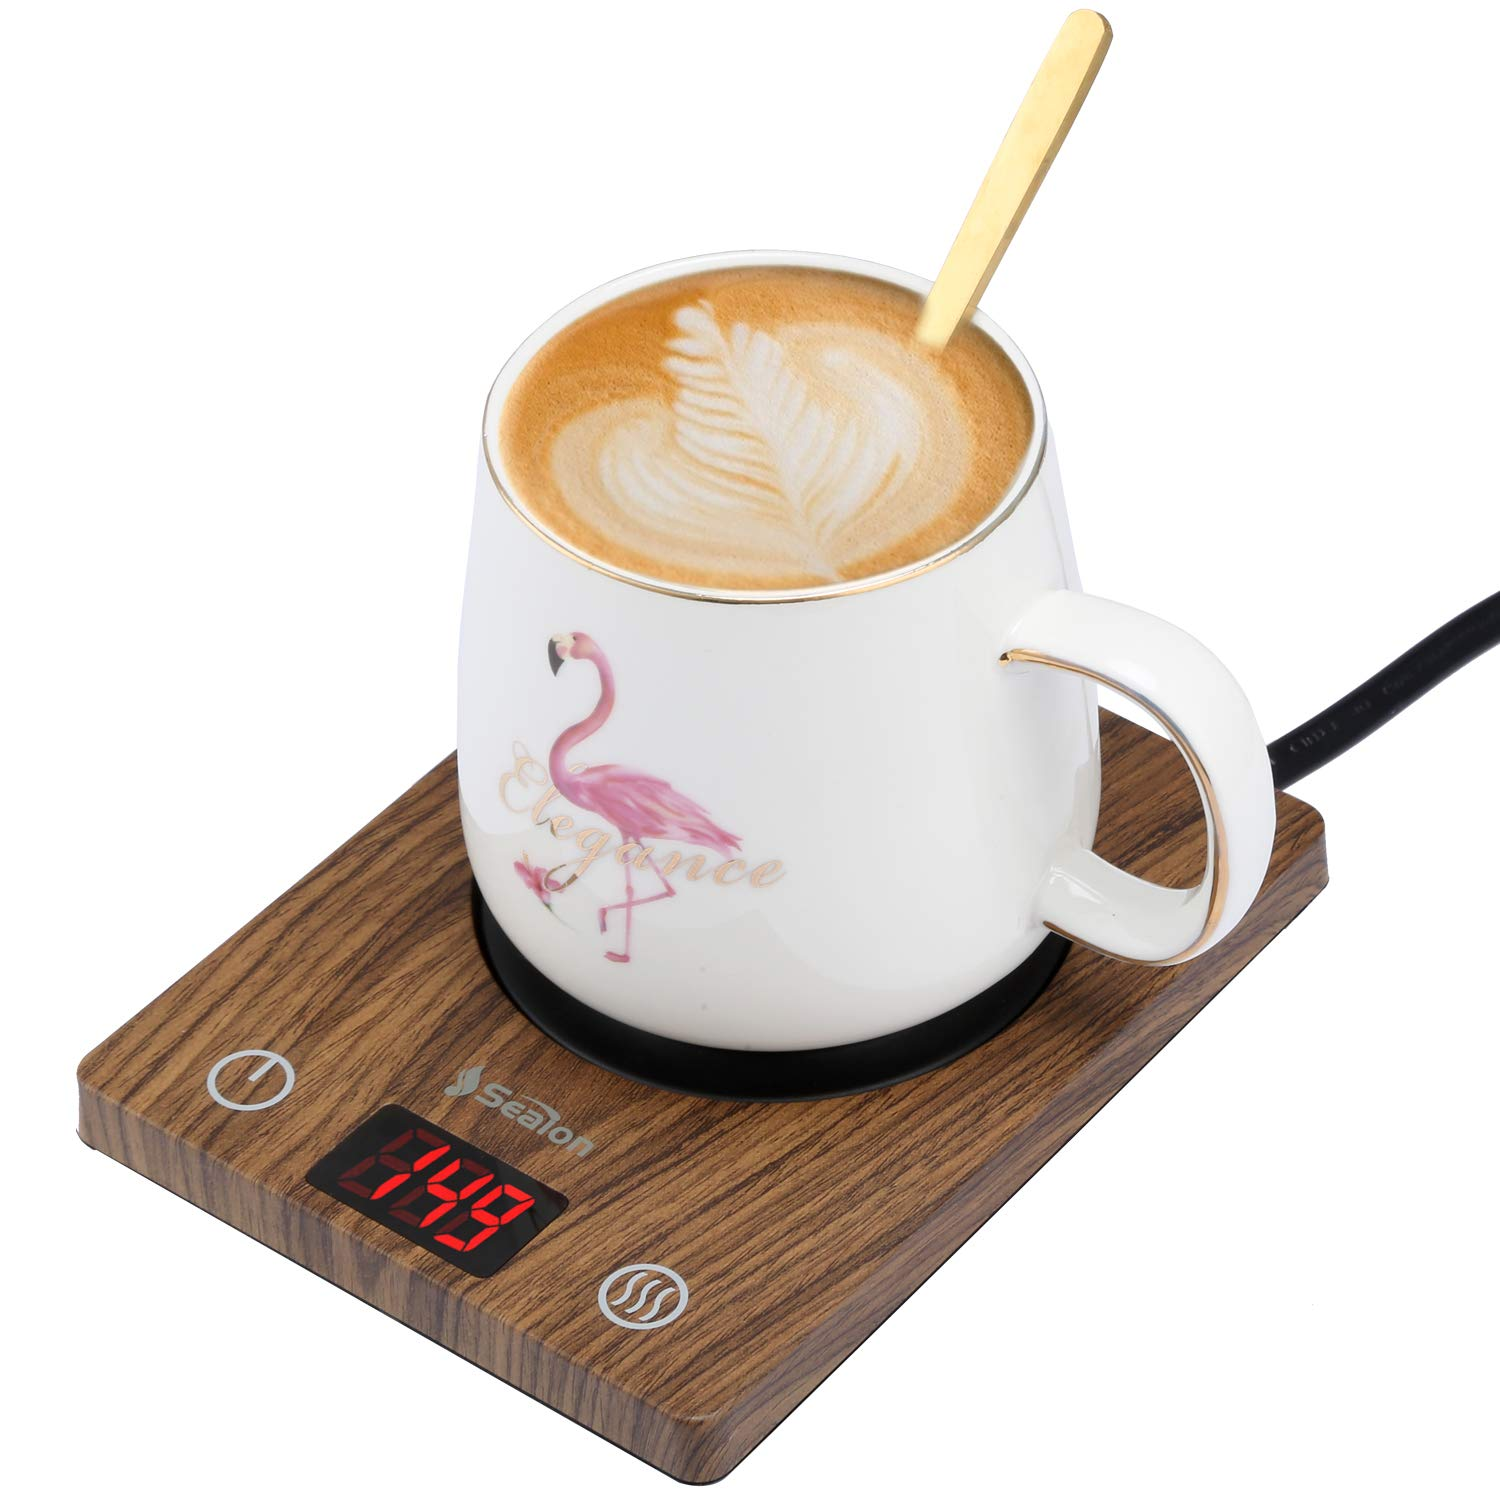 Coffee Mug Warmer Cup Warmer Beverage Warmer for Office Home Best Gift Auto Shut off with Three Temperature Settings 104 131 149 Display,Warmer Plate for Tea Water Milk Cocoa by SeaLon Coffee